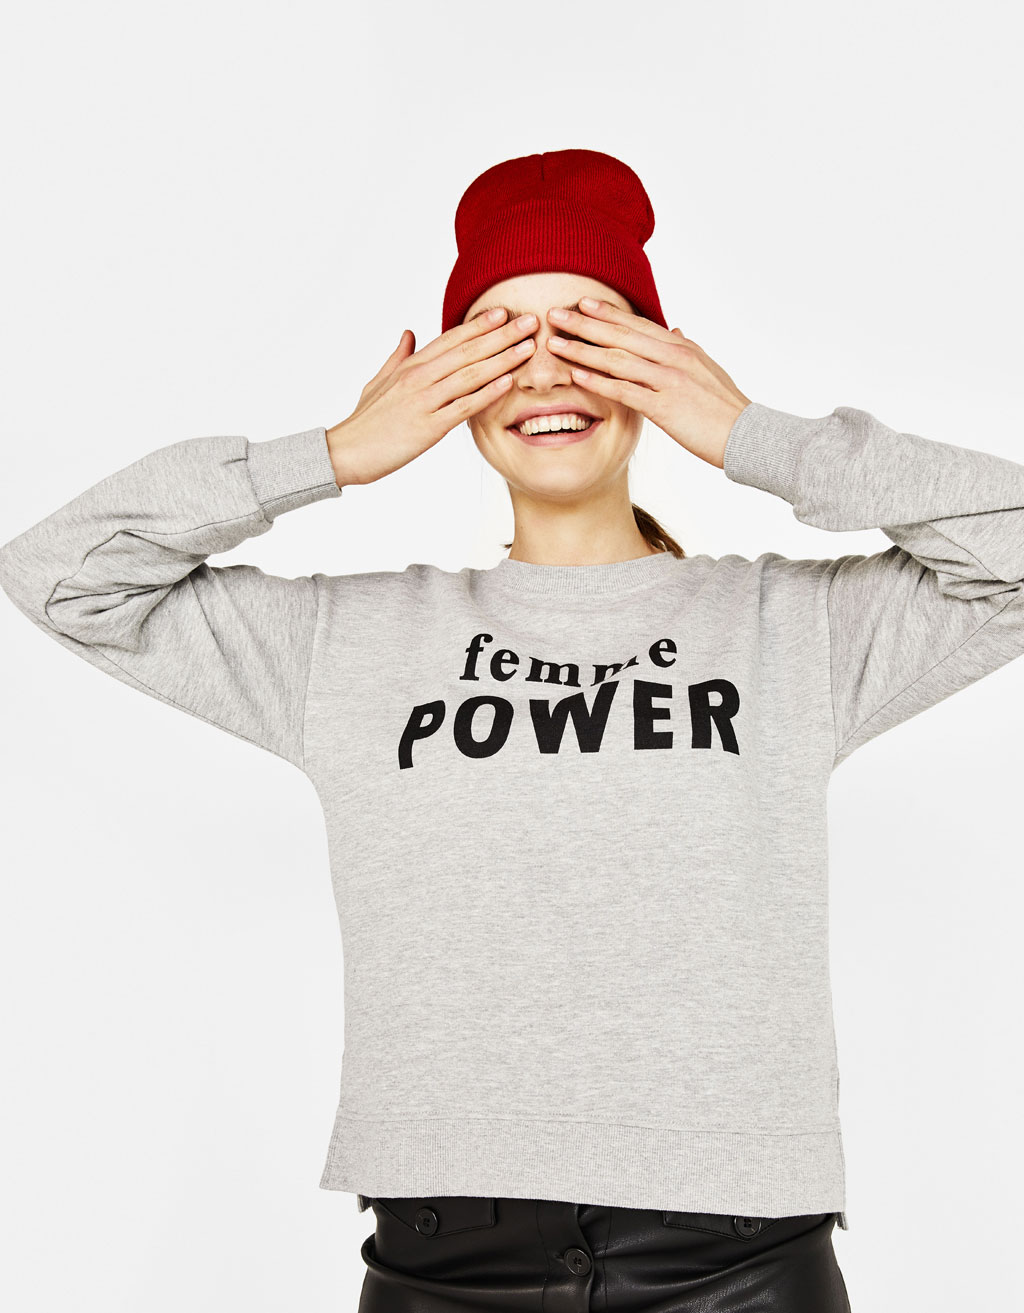 Sweatshirt with slogan and side slits